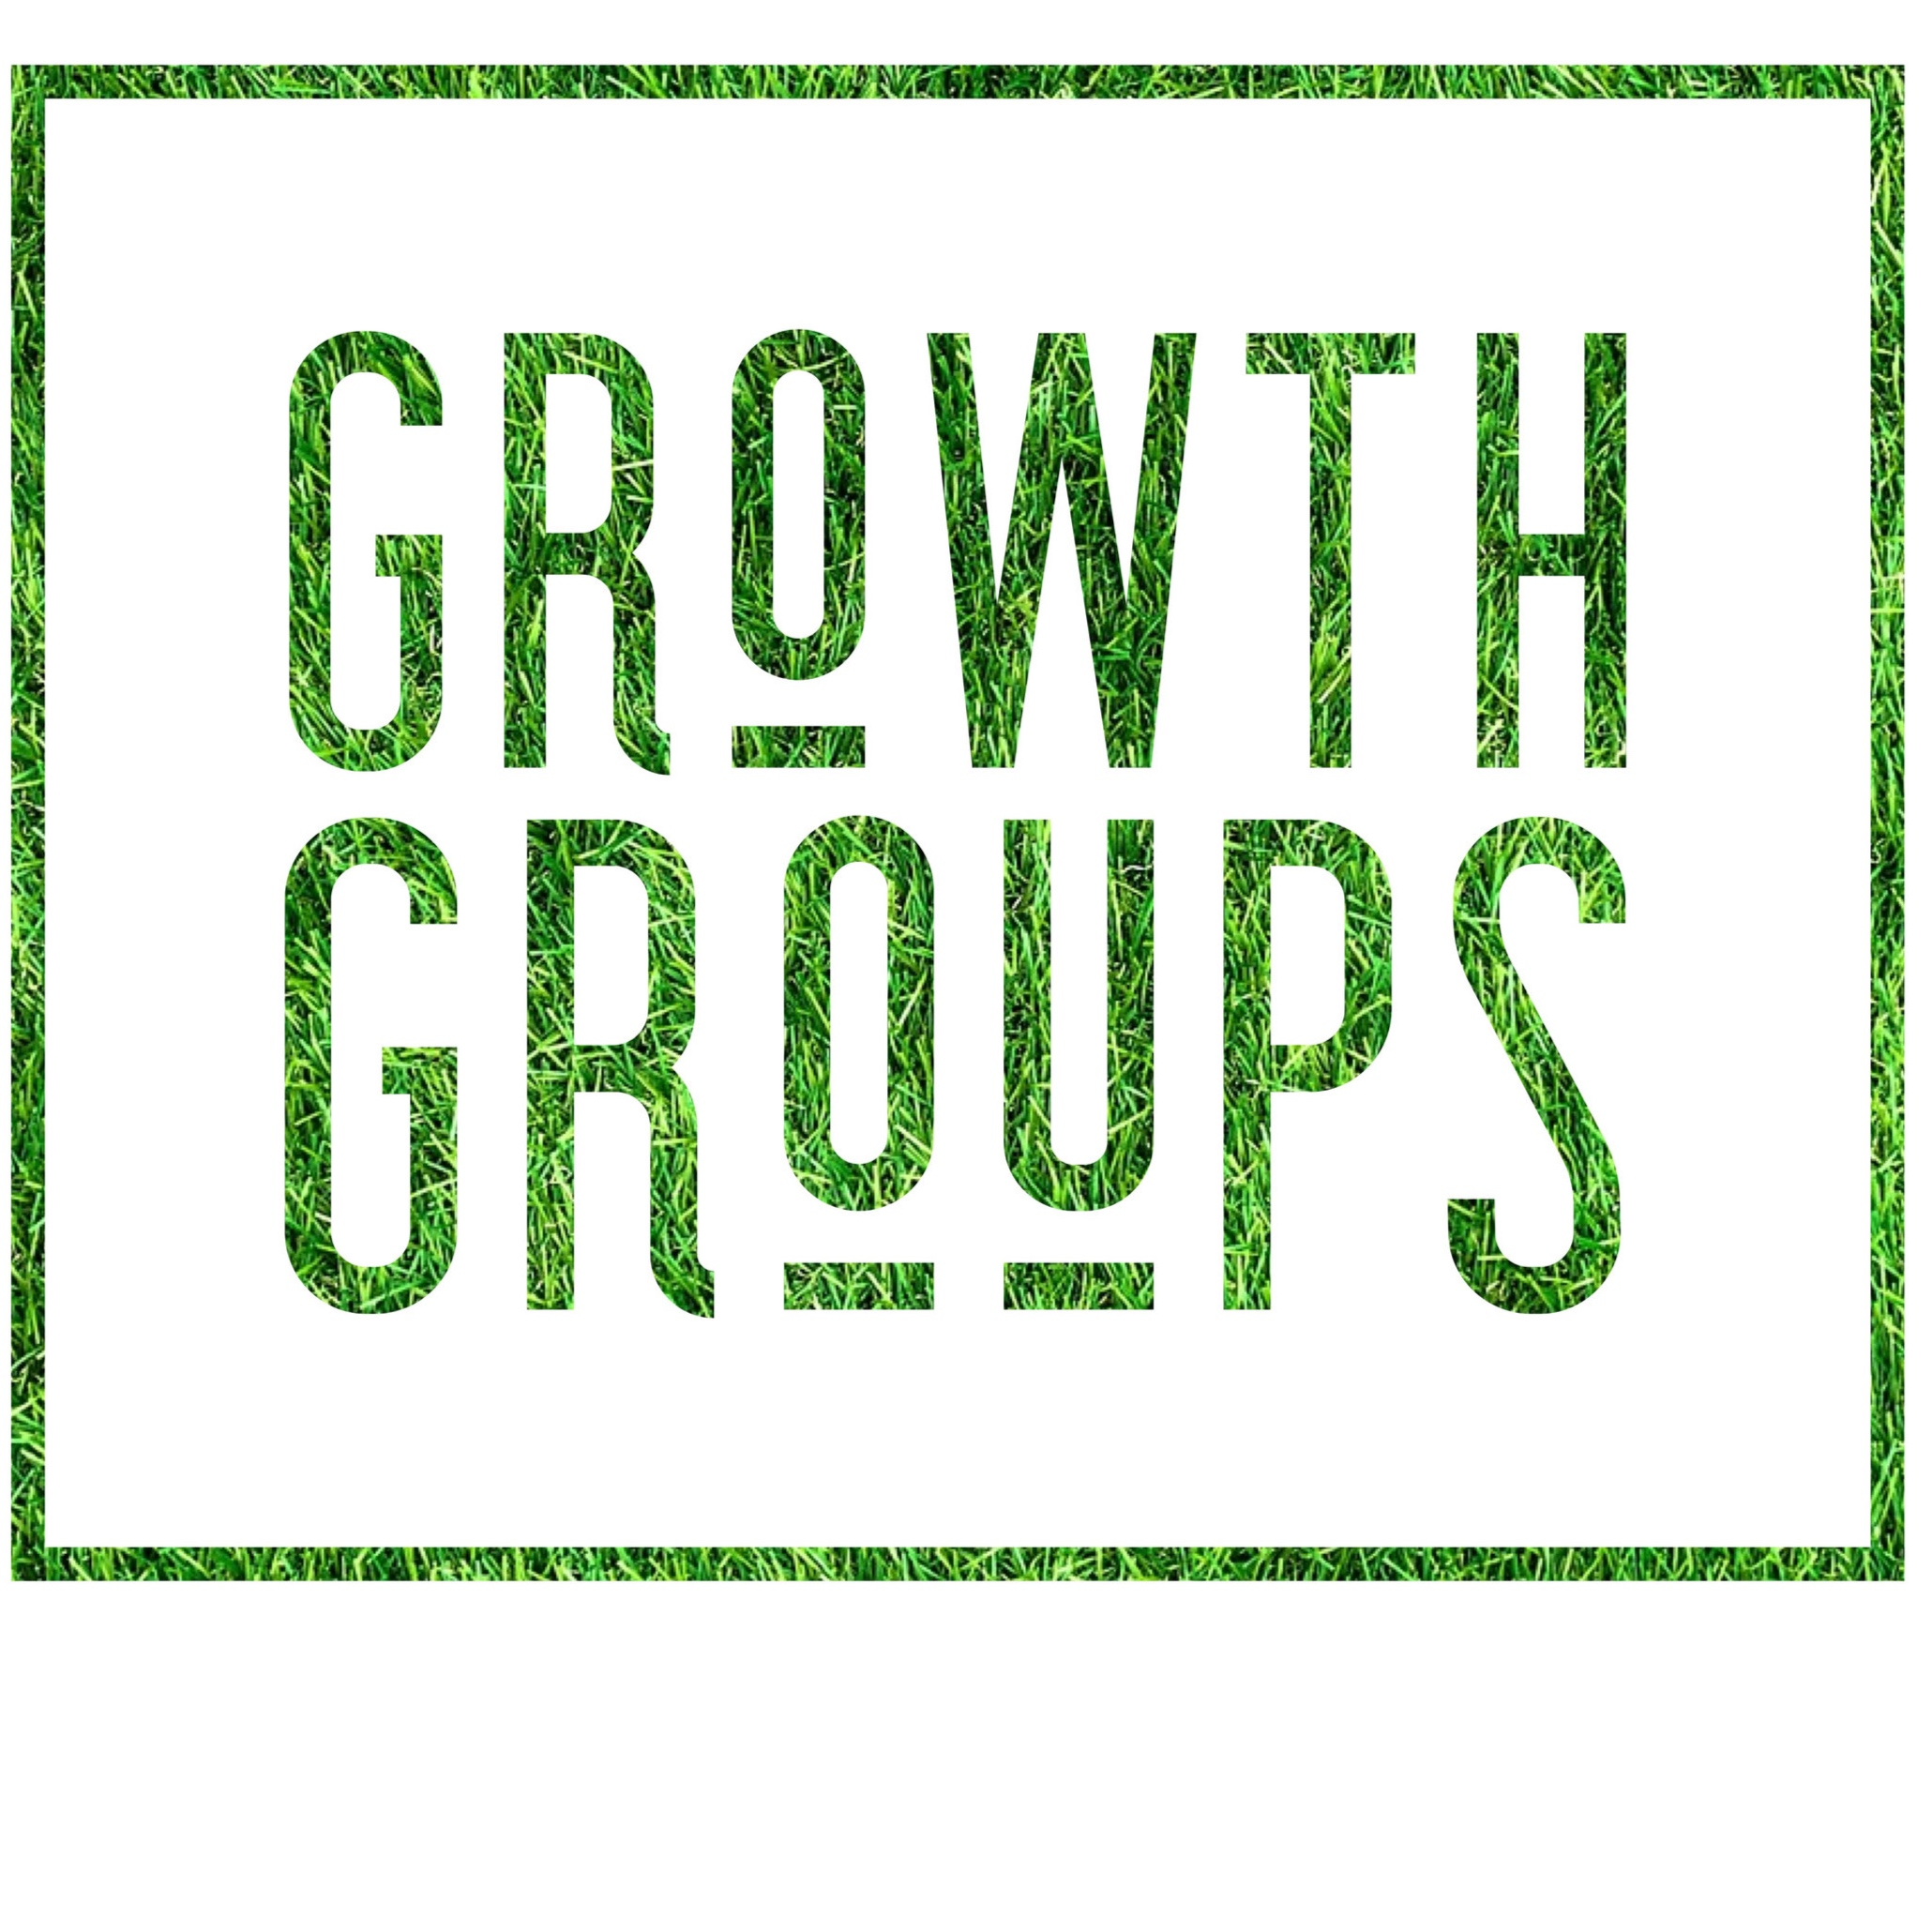 We are excited about our soft launch of Growth Groups summer 2019  These groups will run June 23rd-August 17th  If you missed out on our sign ups e-mail Pastor Jason at jasonm@springfieldcog.org to see if you can still join a group. We will be launching new groups Fall 2019.     Group # 1 - James   Sunday's 6:00 p.m.-7:30 p.m.  Led by: J. & Beth Brown Meeting Location: The Brown's House     Group # 2 - Prayer & Community Building   Thursdays 6:30 p.m.-8:30 p.m.  Led by: Dana & Tracy Haggerty Meeting Location: The Haggerty House     Group # 3 - Discerning the Voice of God   Mondays 7:00 p.m.-8:30 p.m.  Led by: Miriam Casteel Meeting Location: Springfield Church of God     Group # 4 - Alpha   Wednesdays 7:00 p.m.-8:30 p.m.  Led by: Jason Mitchell Meeting Location: Springfield Church of God  Childcare Available